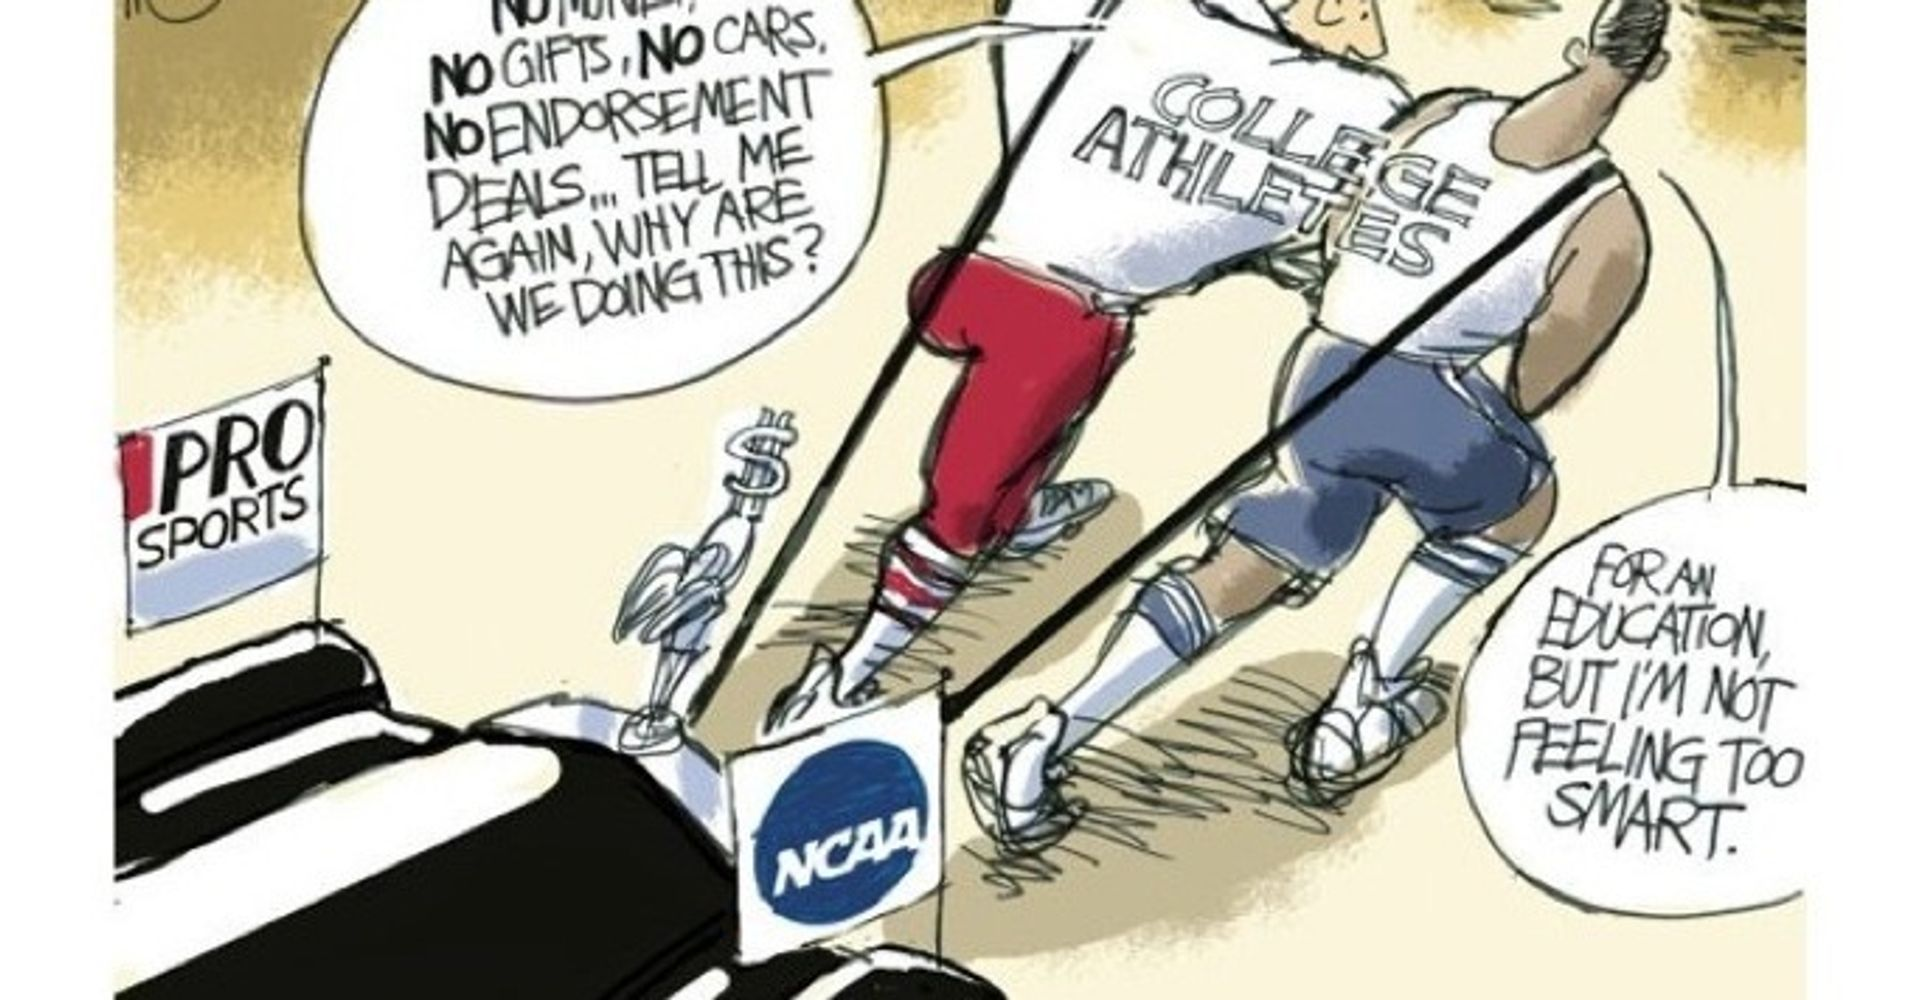 an overview of the payment for the division one of ncaa athletes Student-athletes reach $208 million settlement with ncaa over scholarship  (ncaa) division 1 student-athletes in an  student-athletes the payment and.